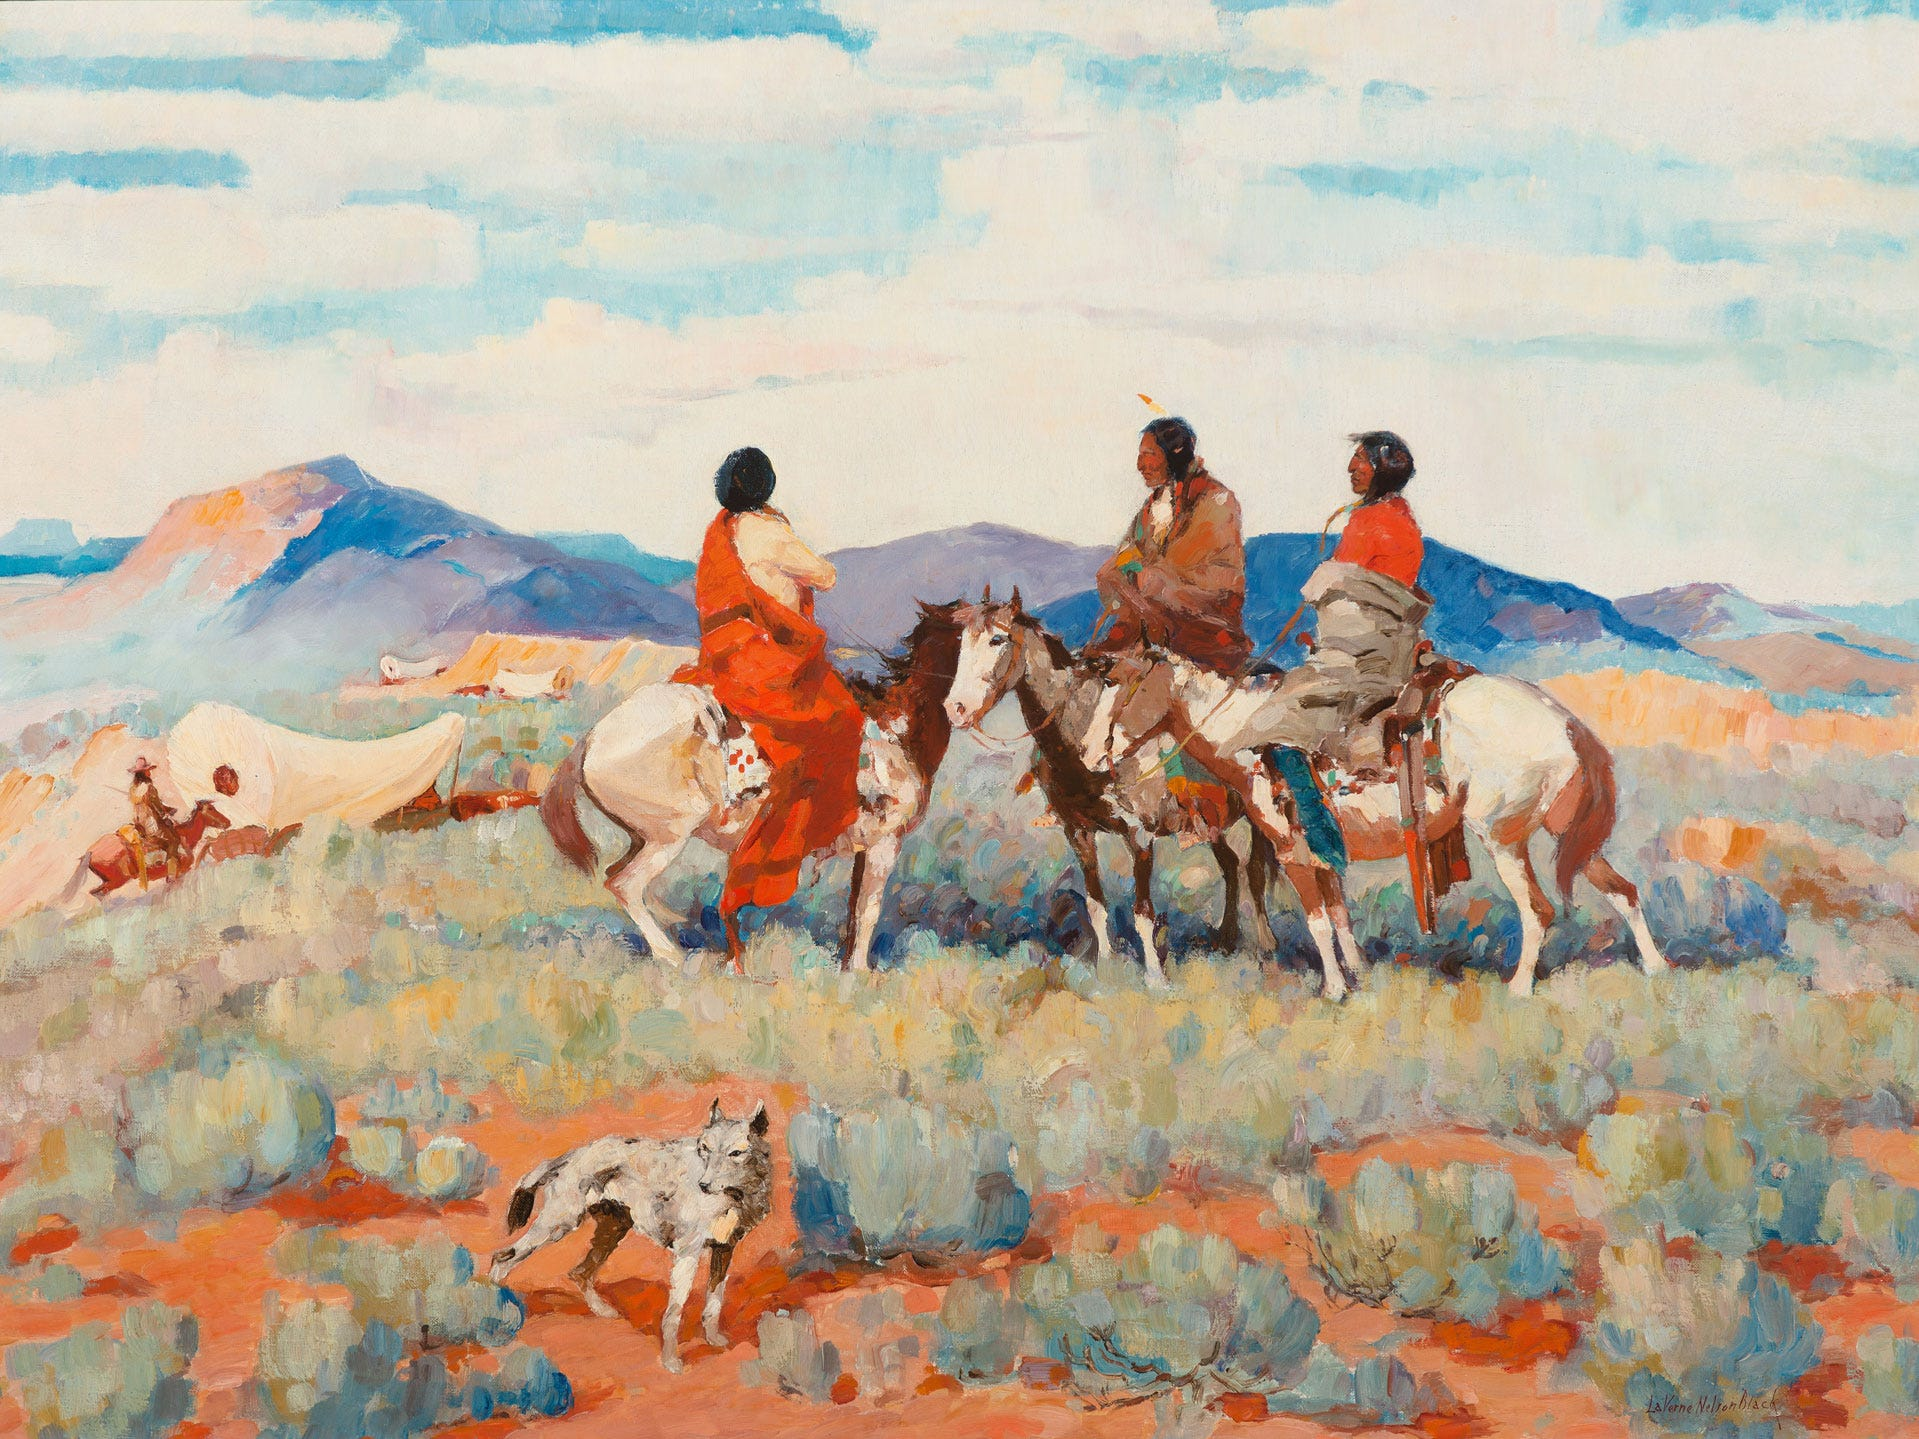 """Along the Old Trail"" by LaVerne Nelson Black, valued at up to $250,000, to be auctioned July 28, 2018 as part of the Coeur d'Alene Art Auction in Reno."